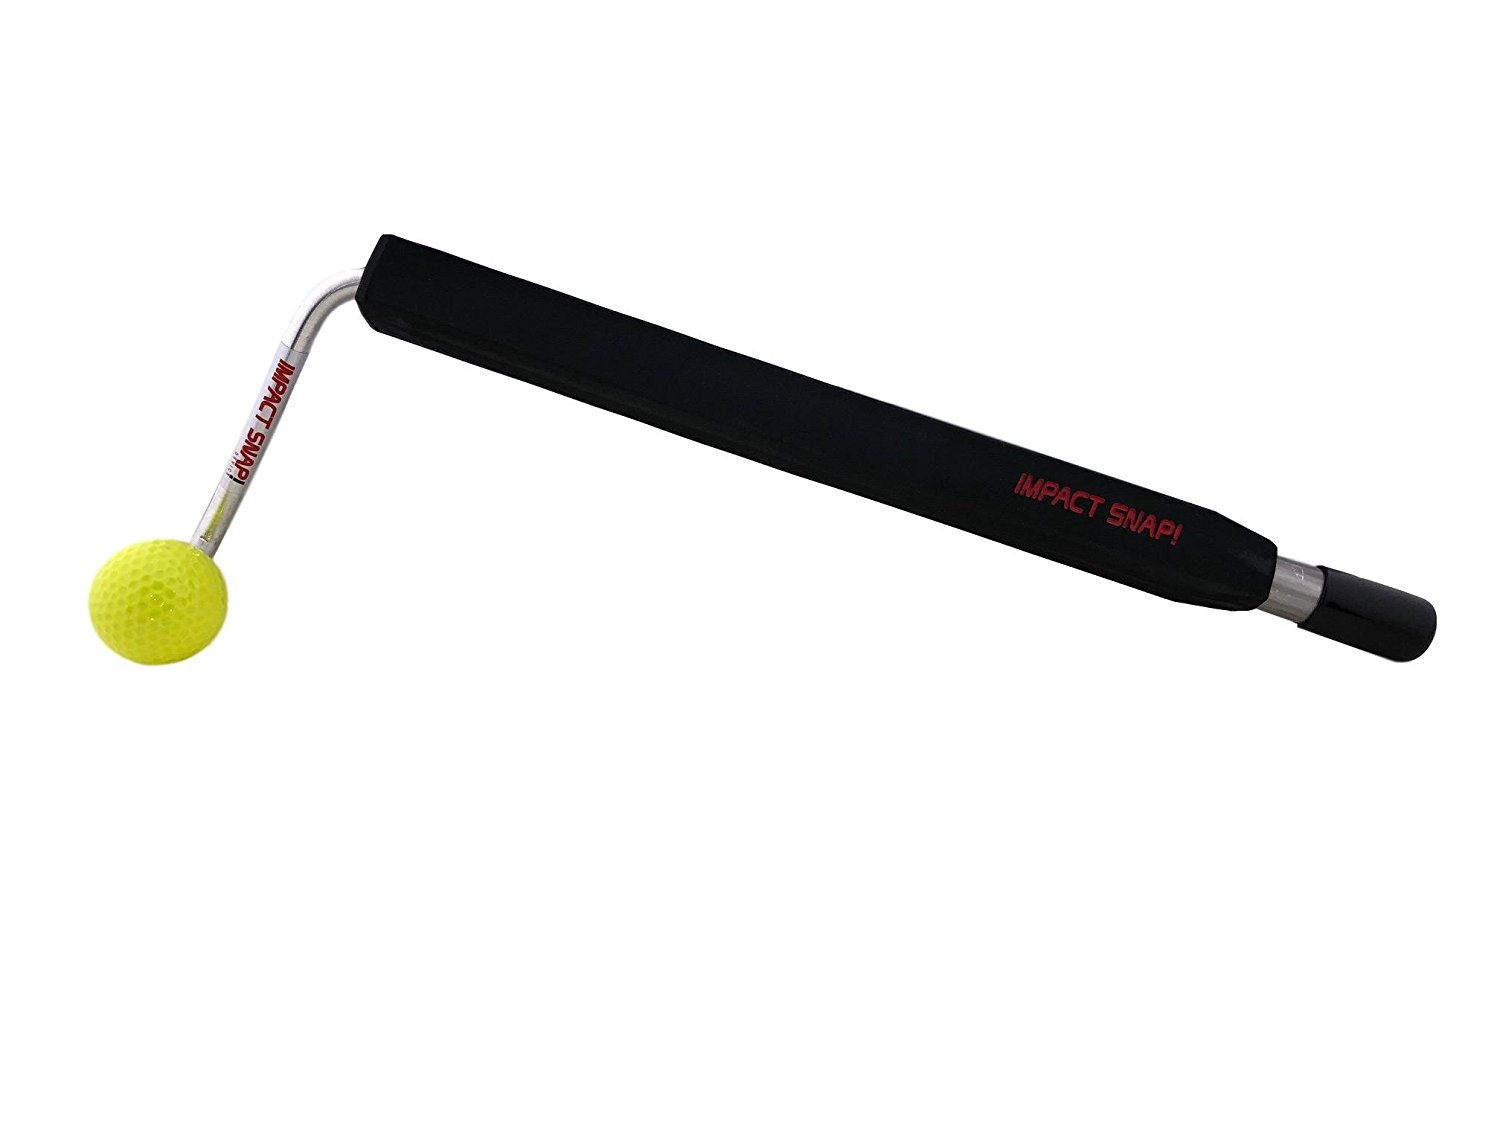 Impact Snap Golf Swing Training Device